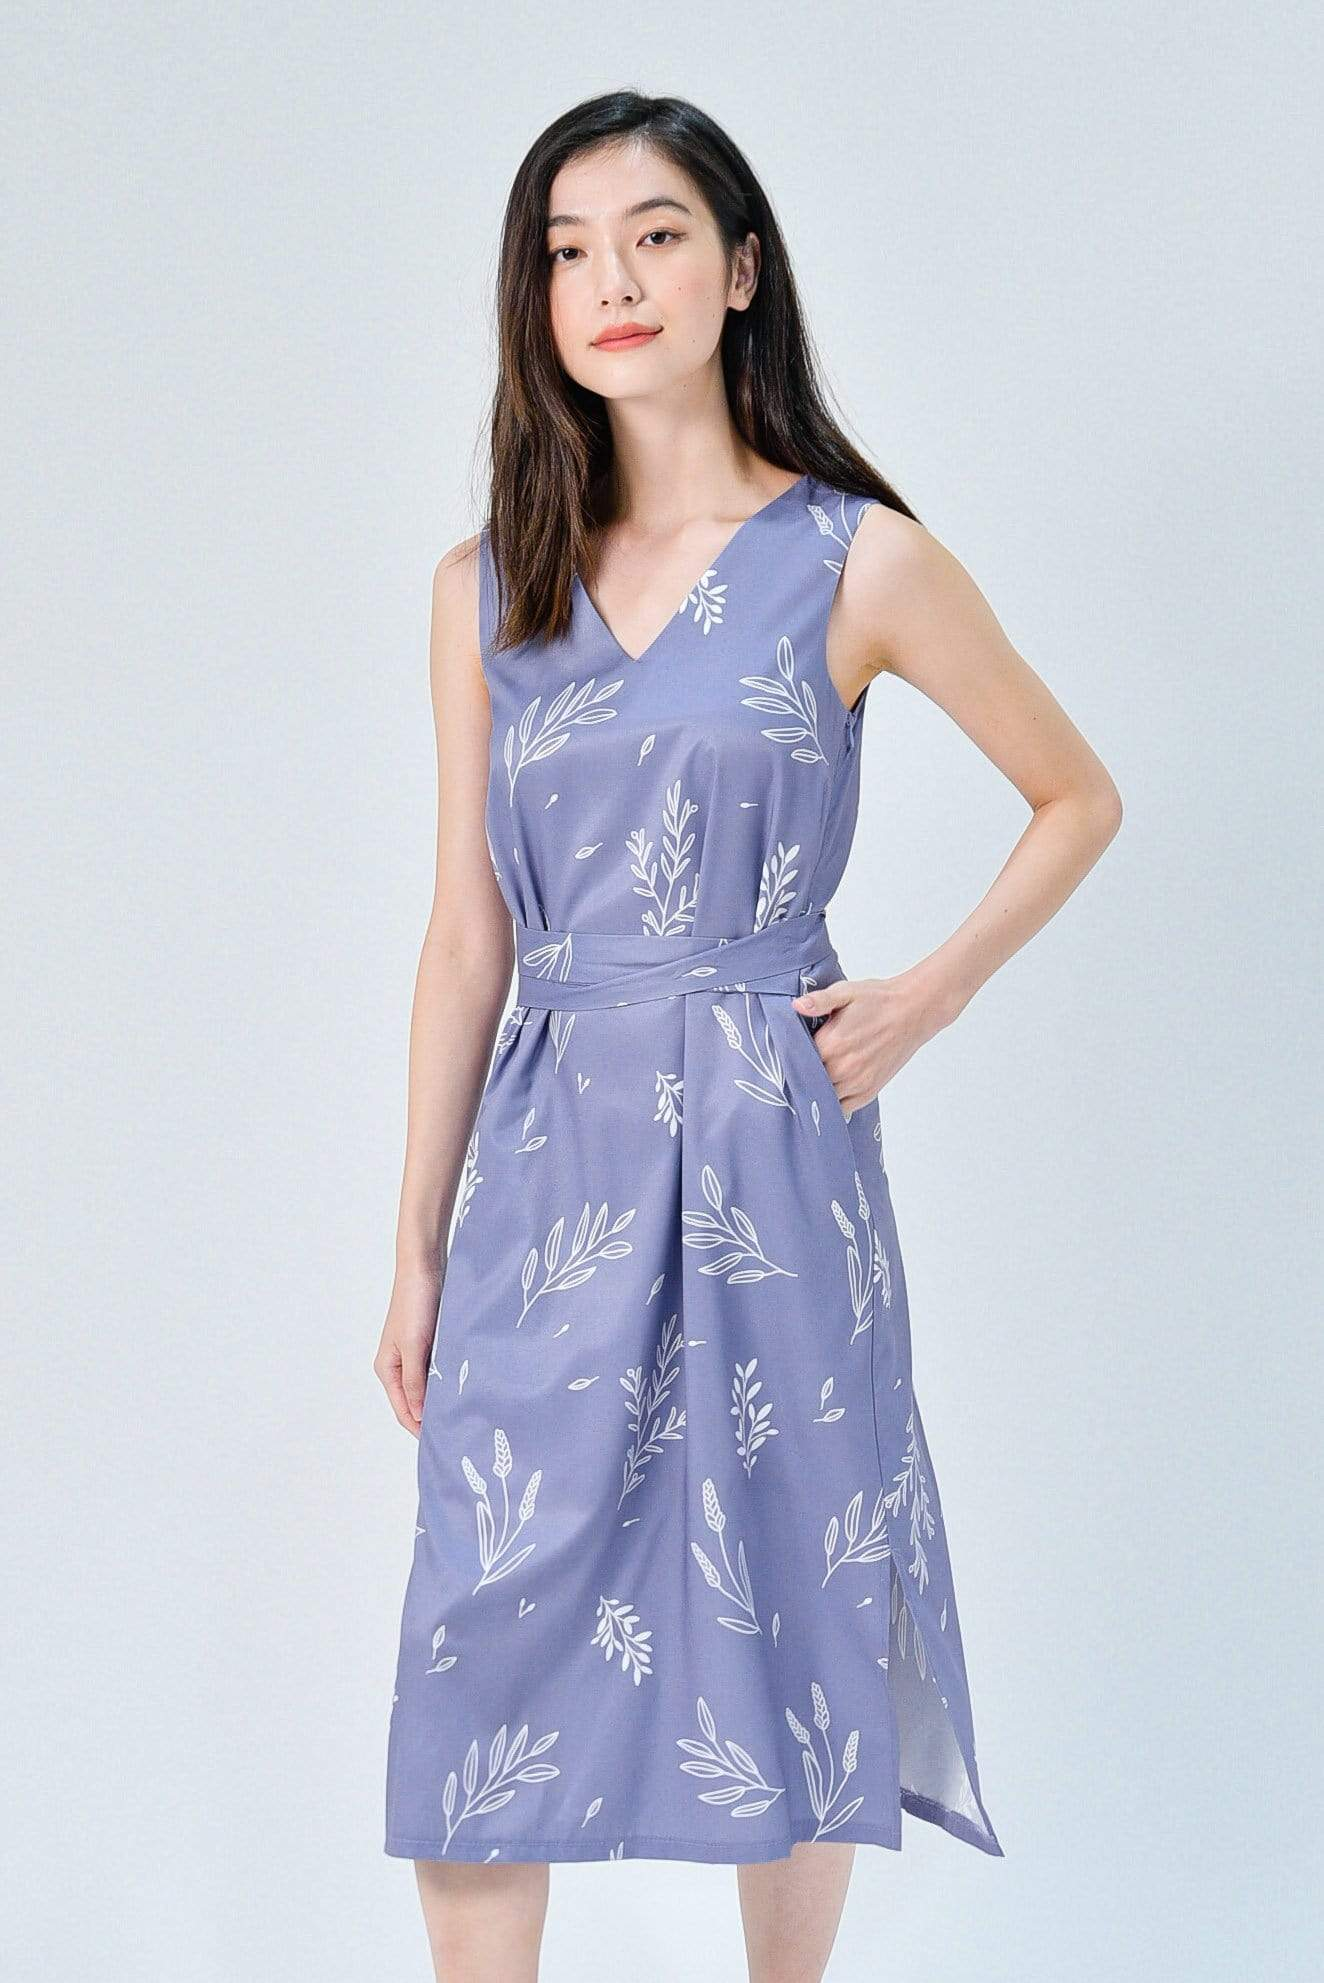 VIOLA LAVENDER FOLIAGE SLEEVELESS SASH DRESS